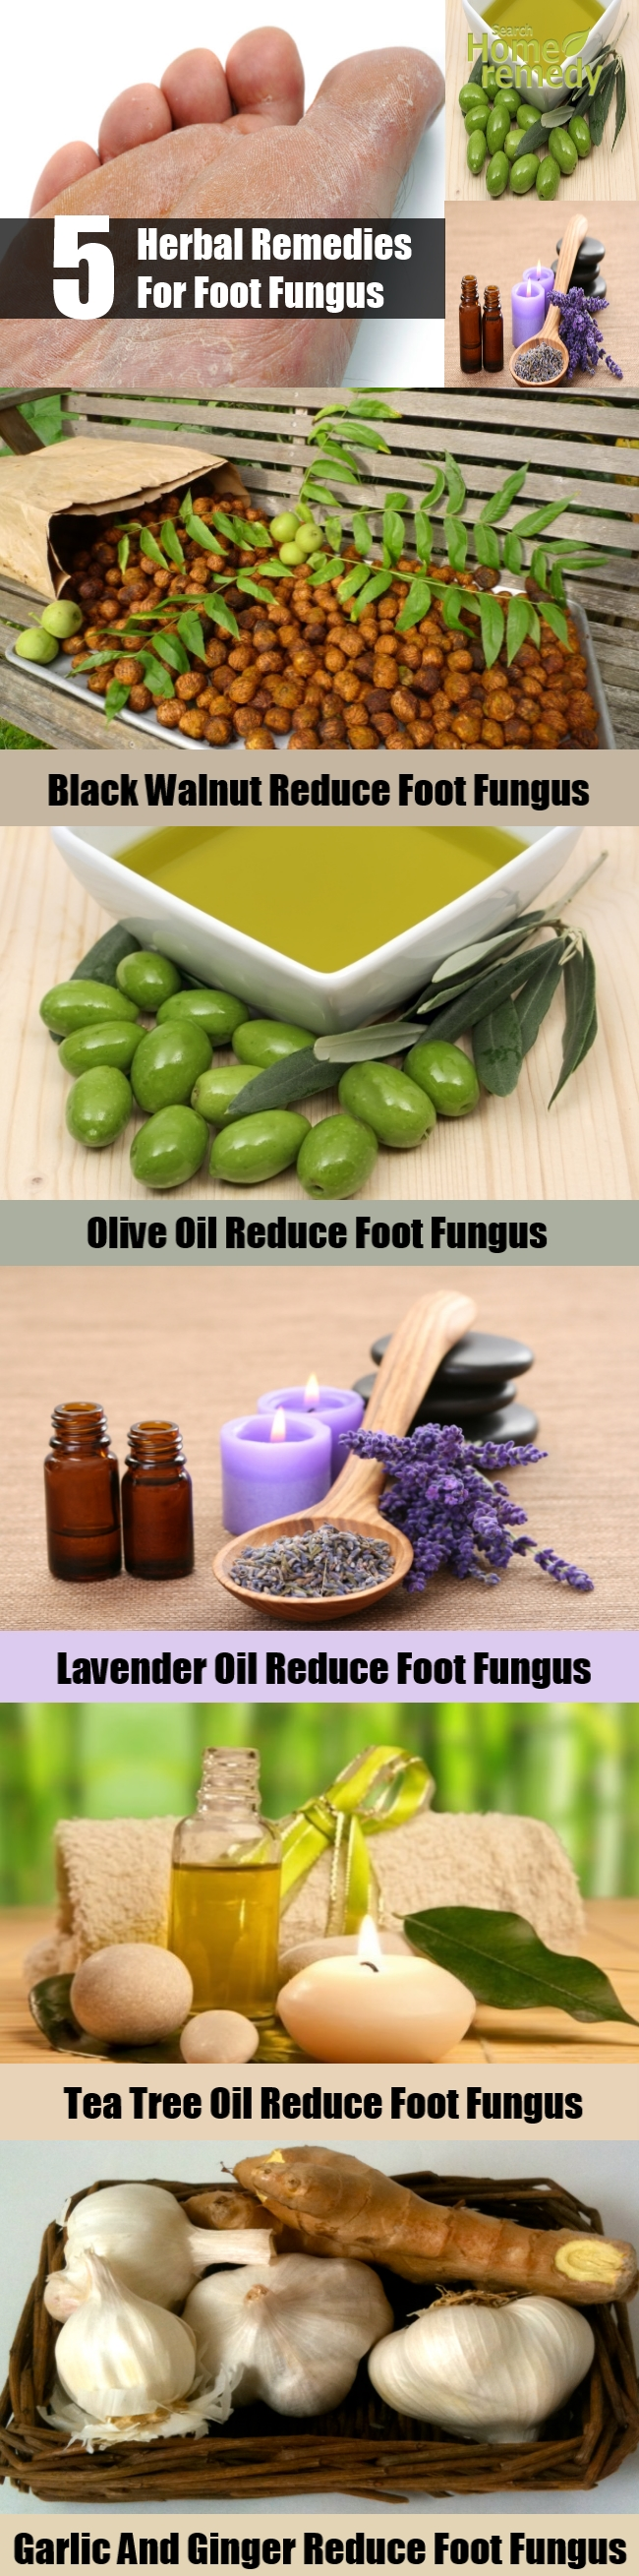 Top 5 Herbal Remedies For Foot Fungus